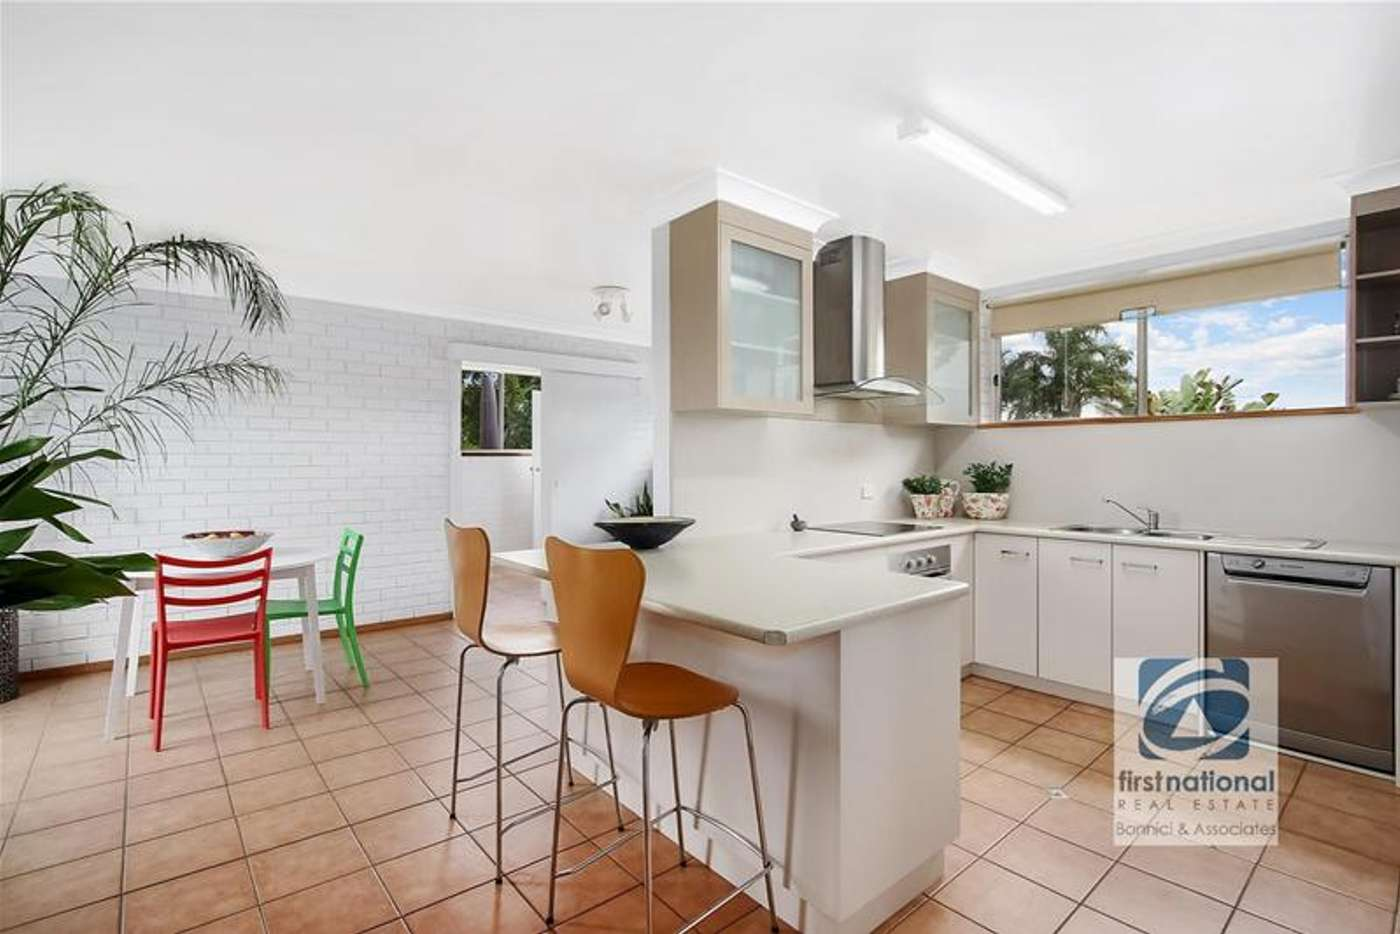 Fifth view of Homely house listing, 25 Osburn Street, Wodonga VIC 3690